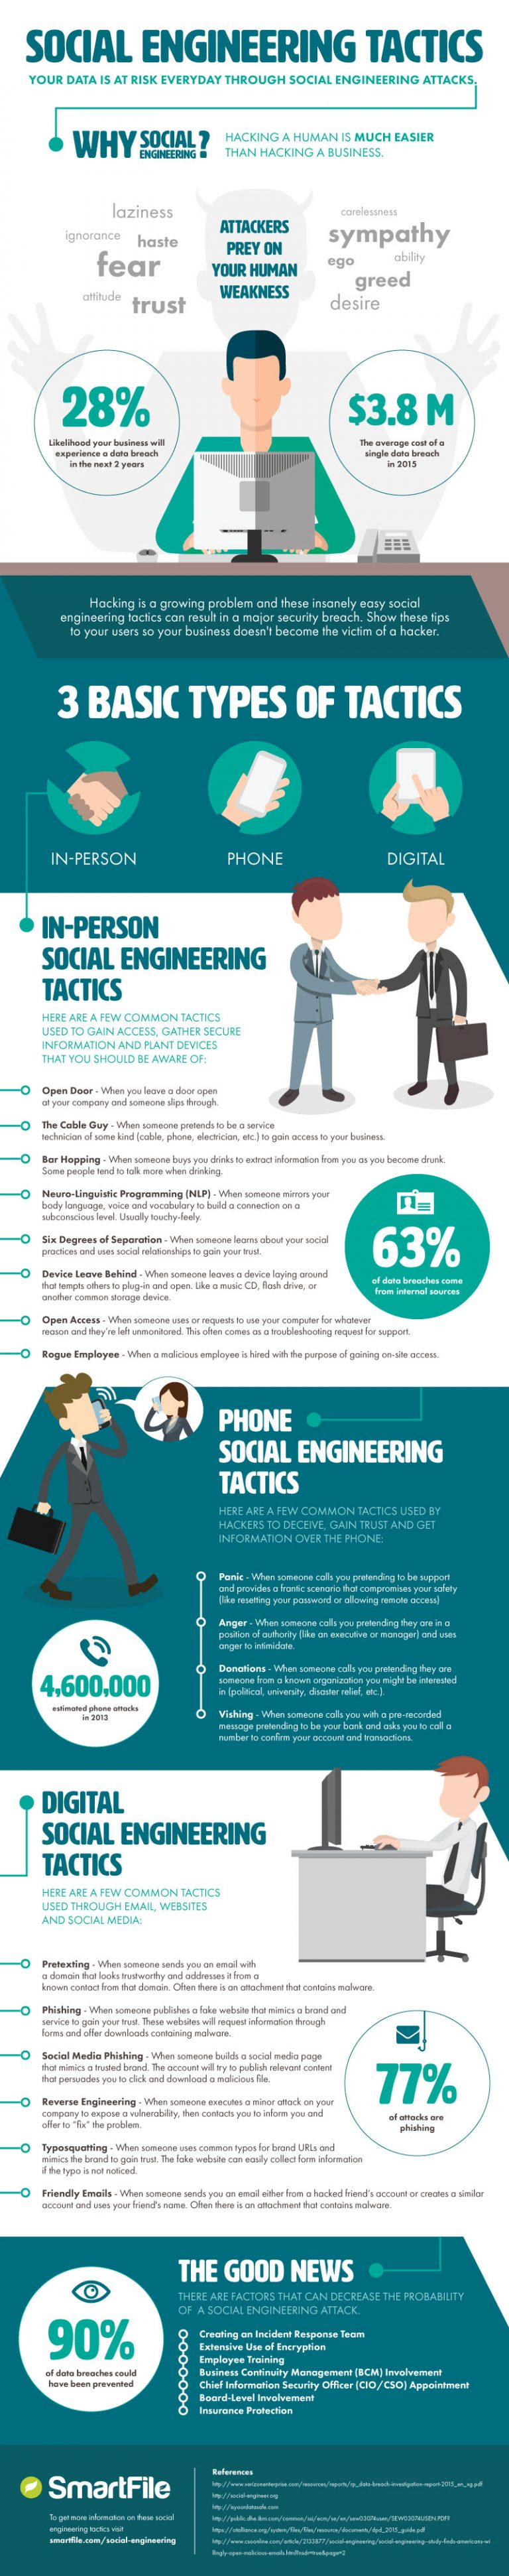 Social Engineering 101 - Infographic